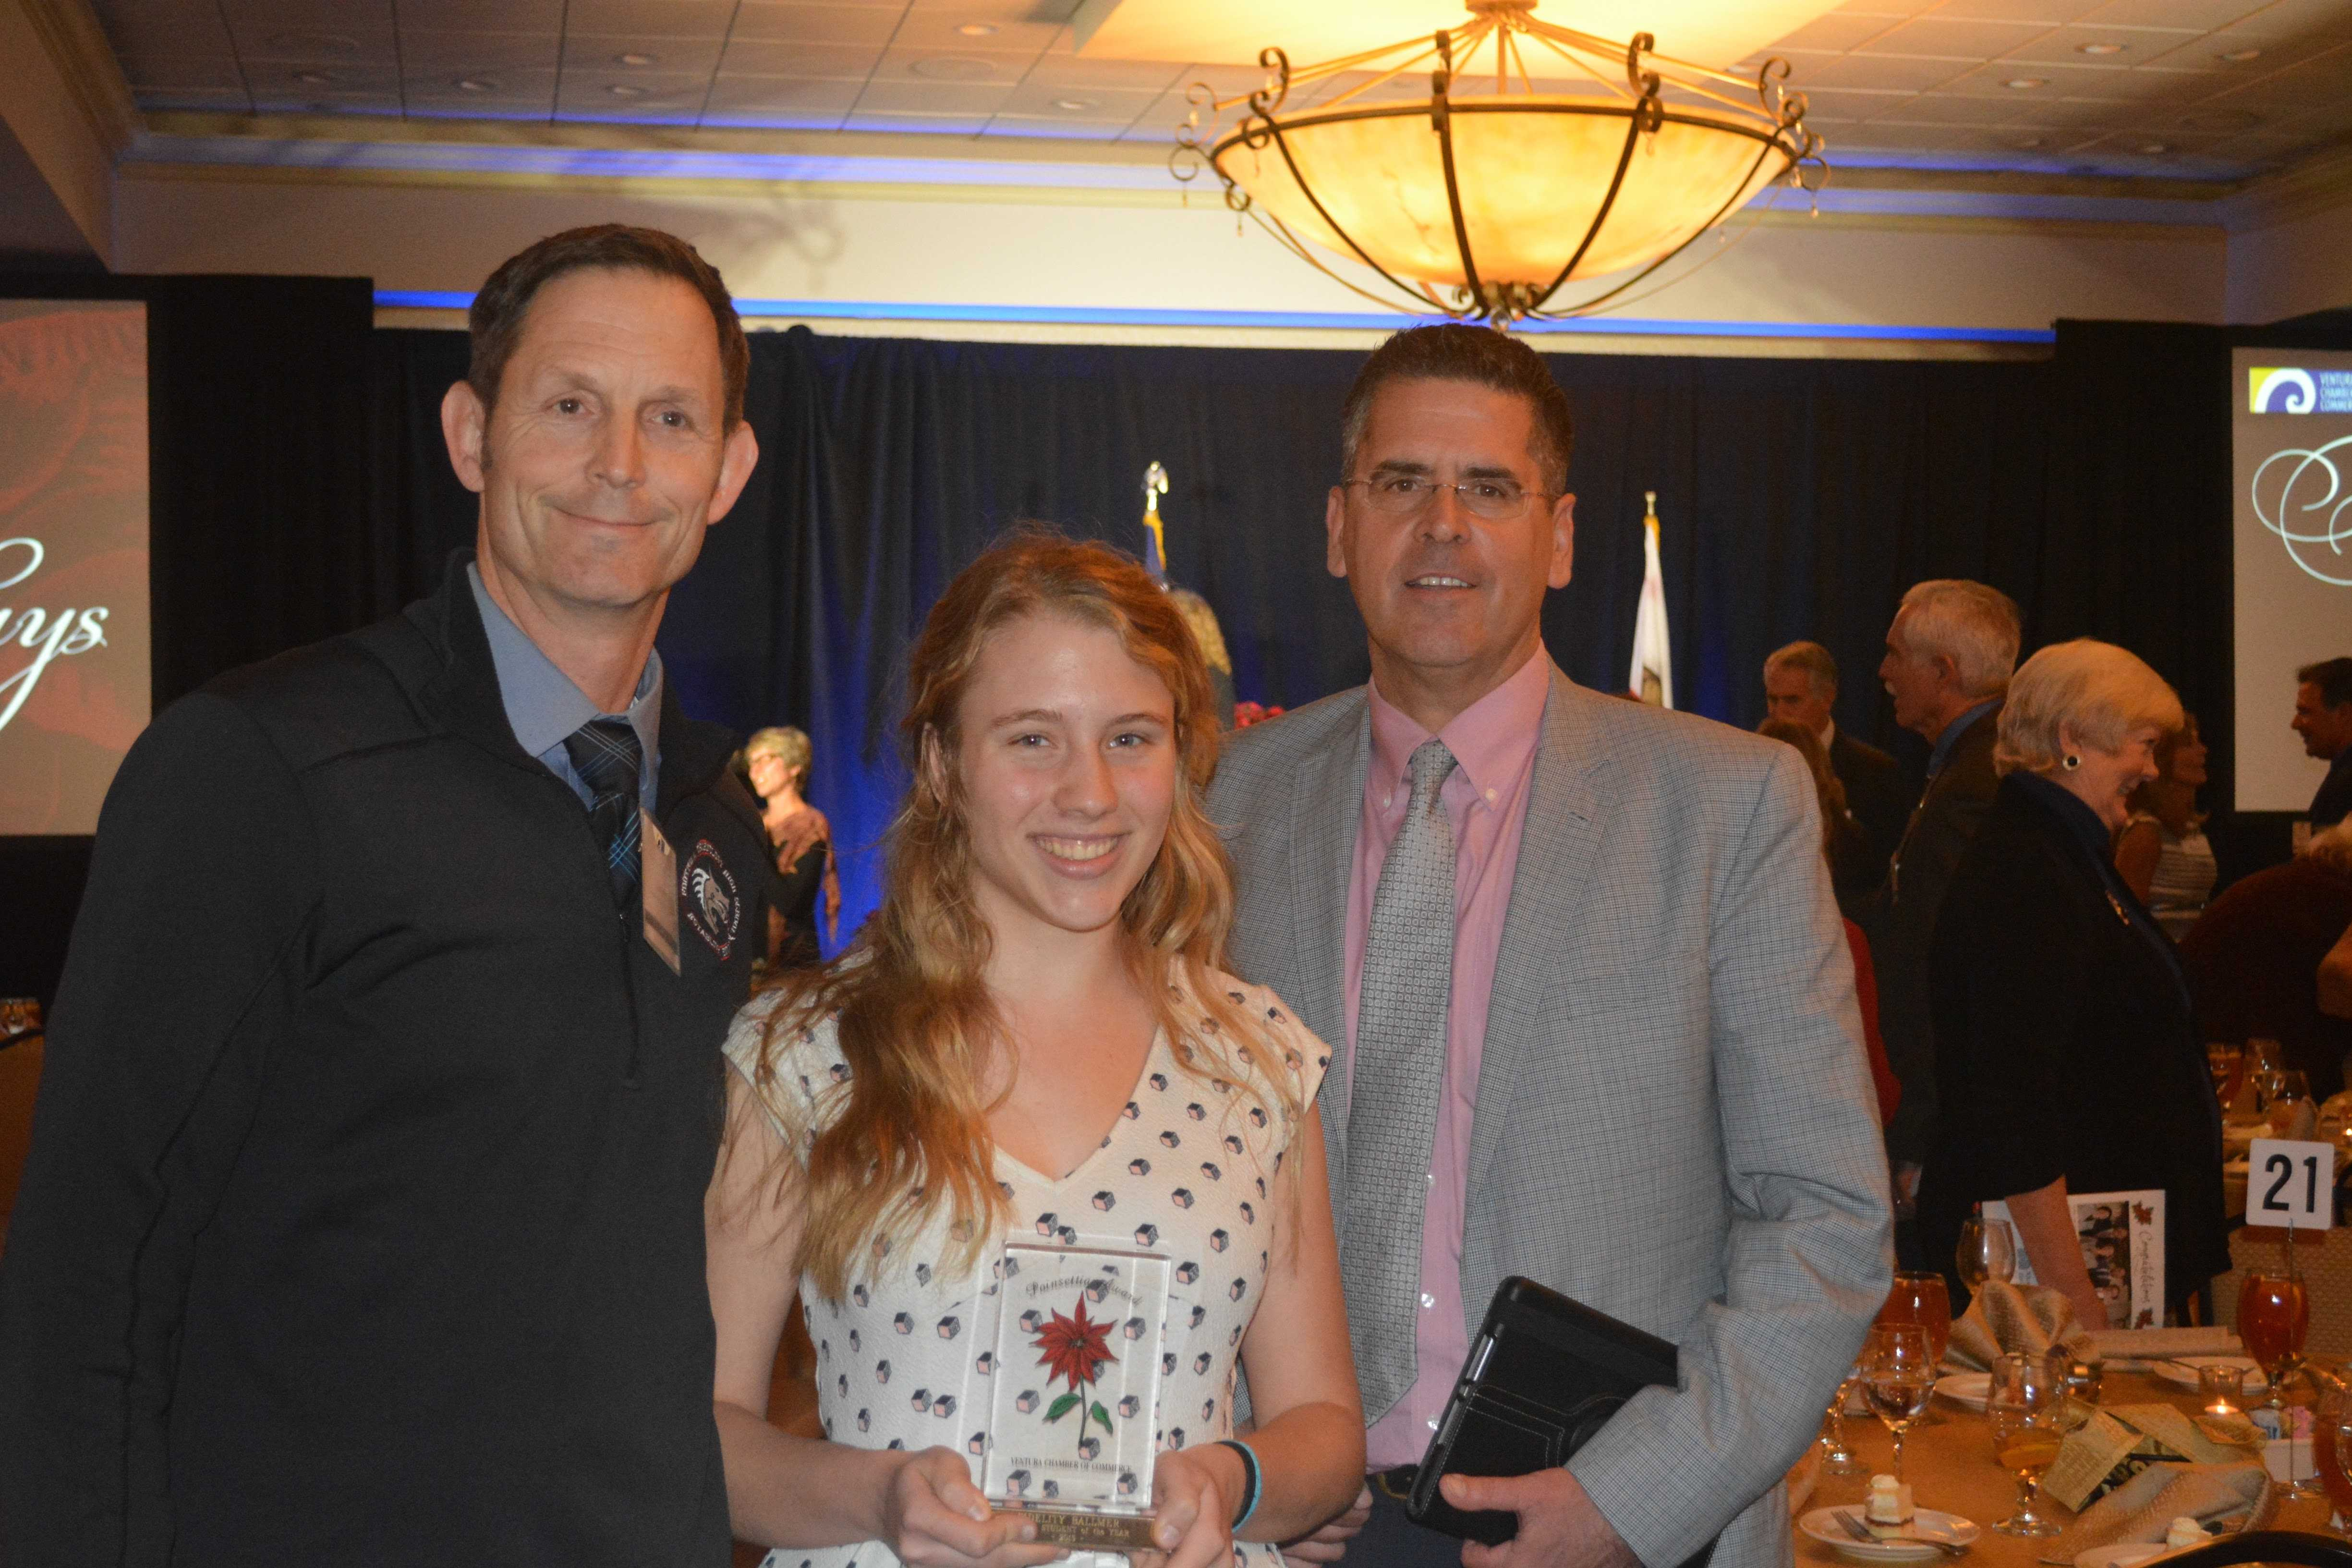 Foothill Technology High School Principal Joe Bova and Ventura Unified School District Superintendent Dr. Michael Babb pose with Female Student of the Year Award winner Fidelity Ballmer. Credit: Bella Bobrow/The Foothill Dragon Press.